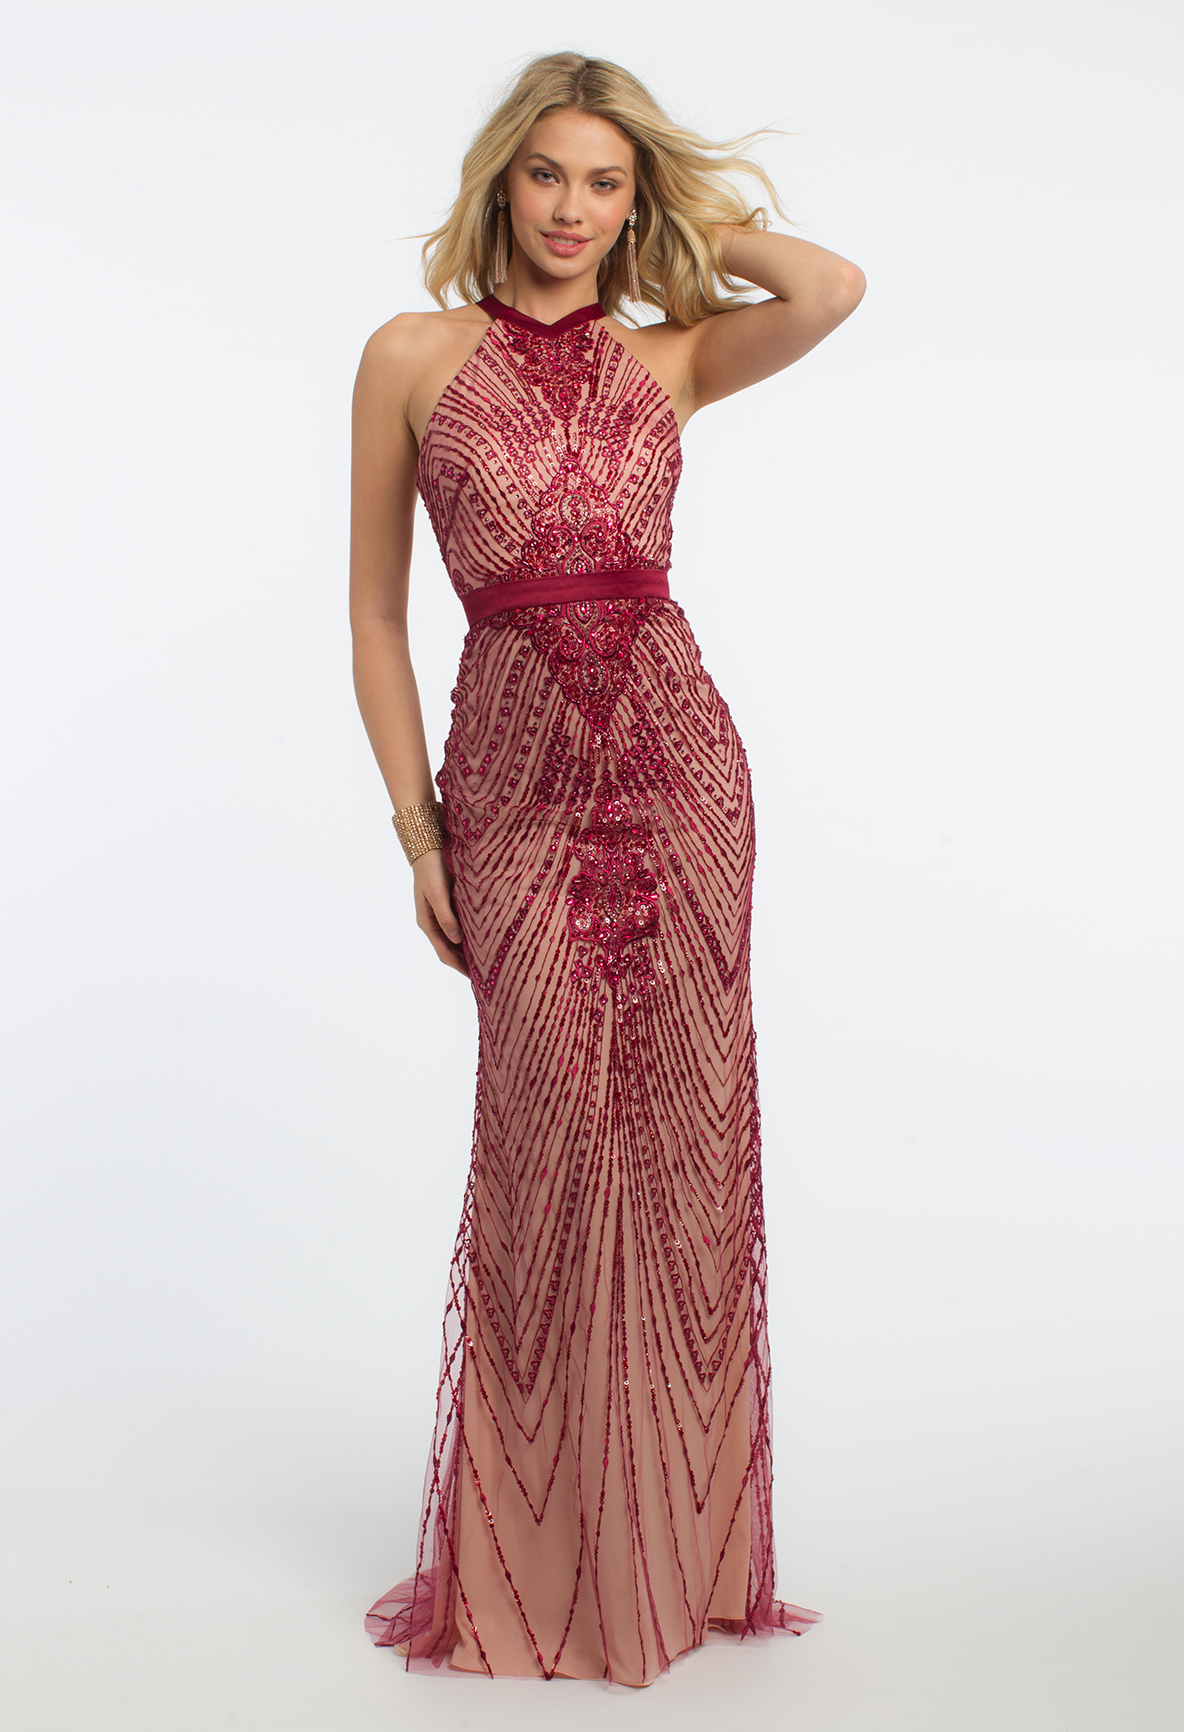 Come In Hot Hot Hot For Prom With This Striking Evening Gown The Halter Neckline Fitted Bodice Modified Mermaid Skirt X Open Back And Vestidos Vestido Rosa [ 1732 x 1184 Pixel ]